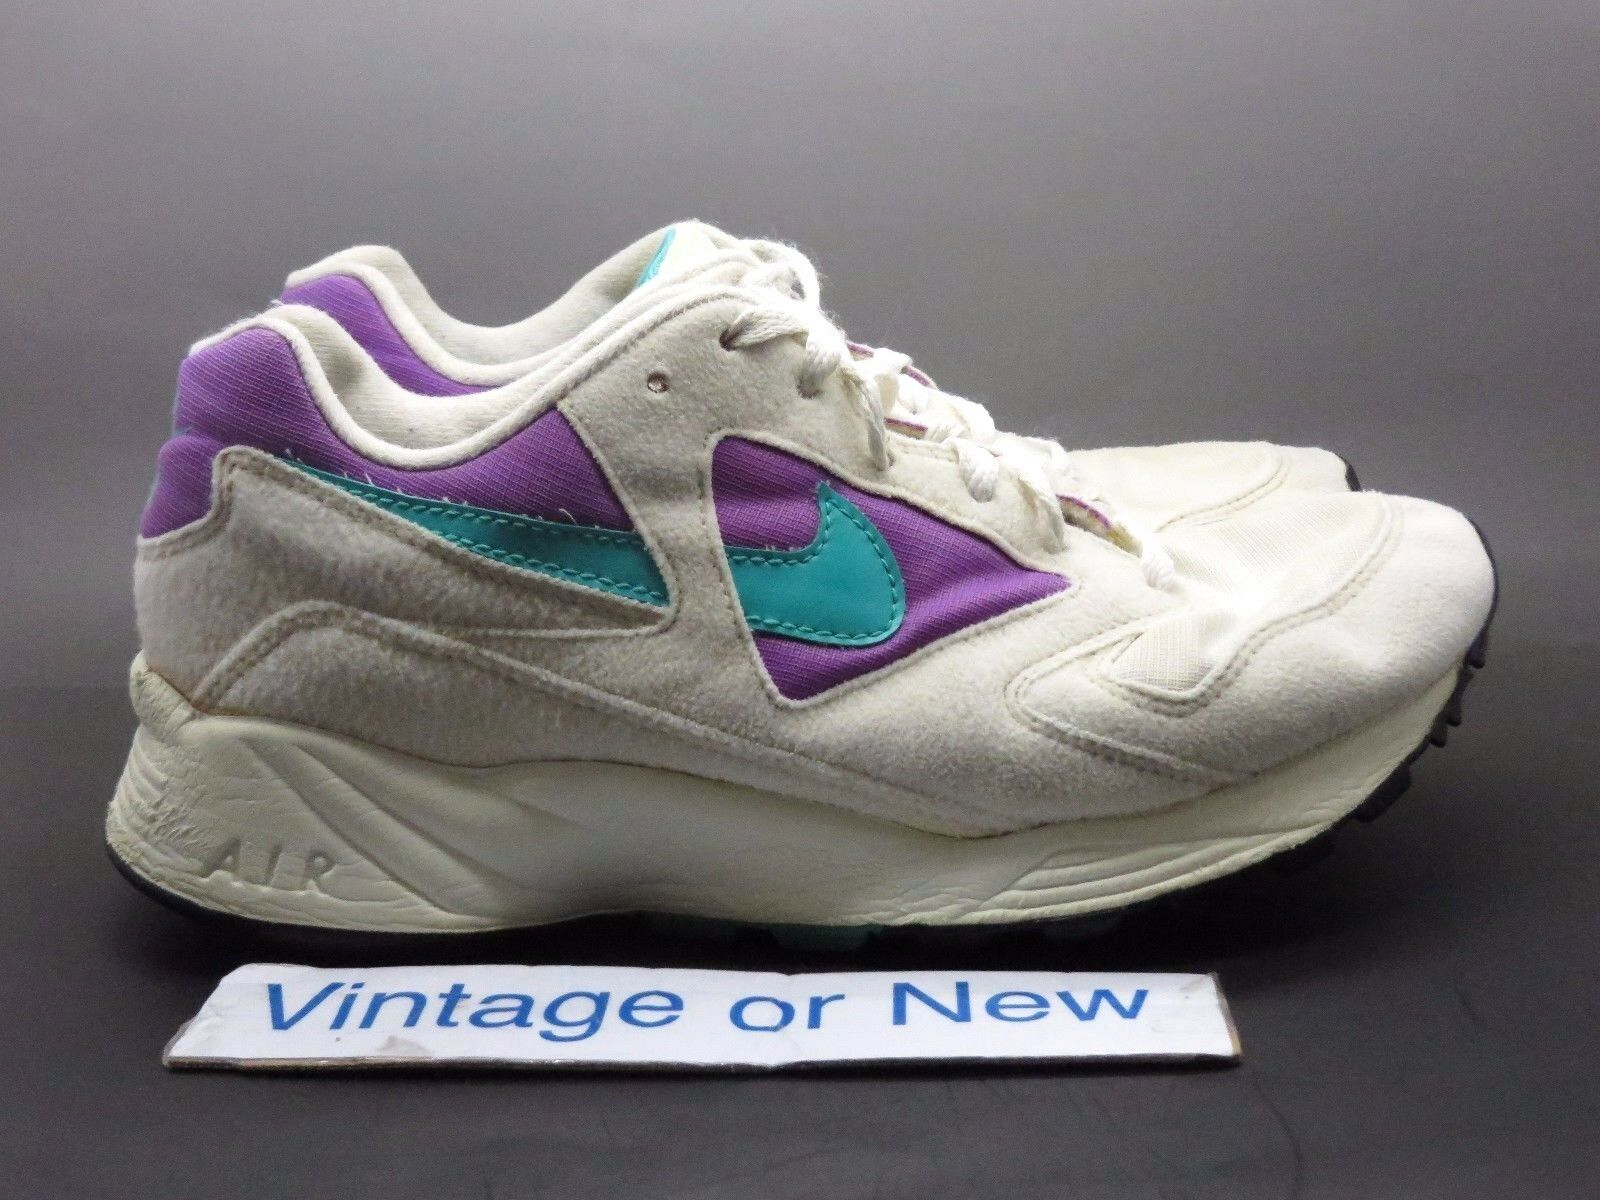 new arrival c7f16 dd84b Women s VTG Nike Air Icarus White Purple Teal Running Shoes Shoes Shoes  1992 sz 8.5 76cd5f